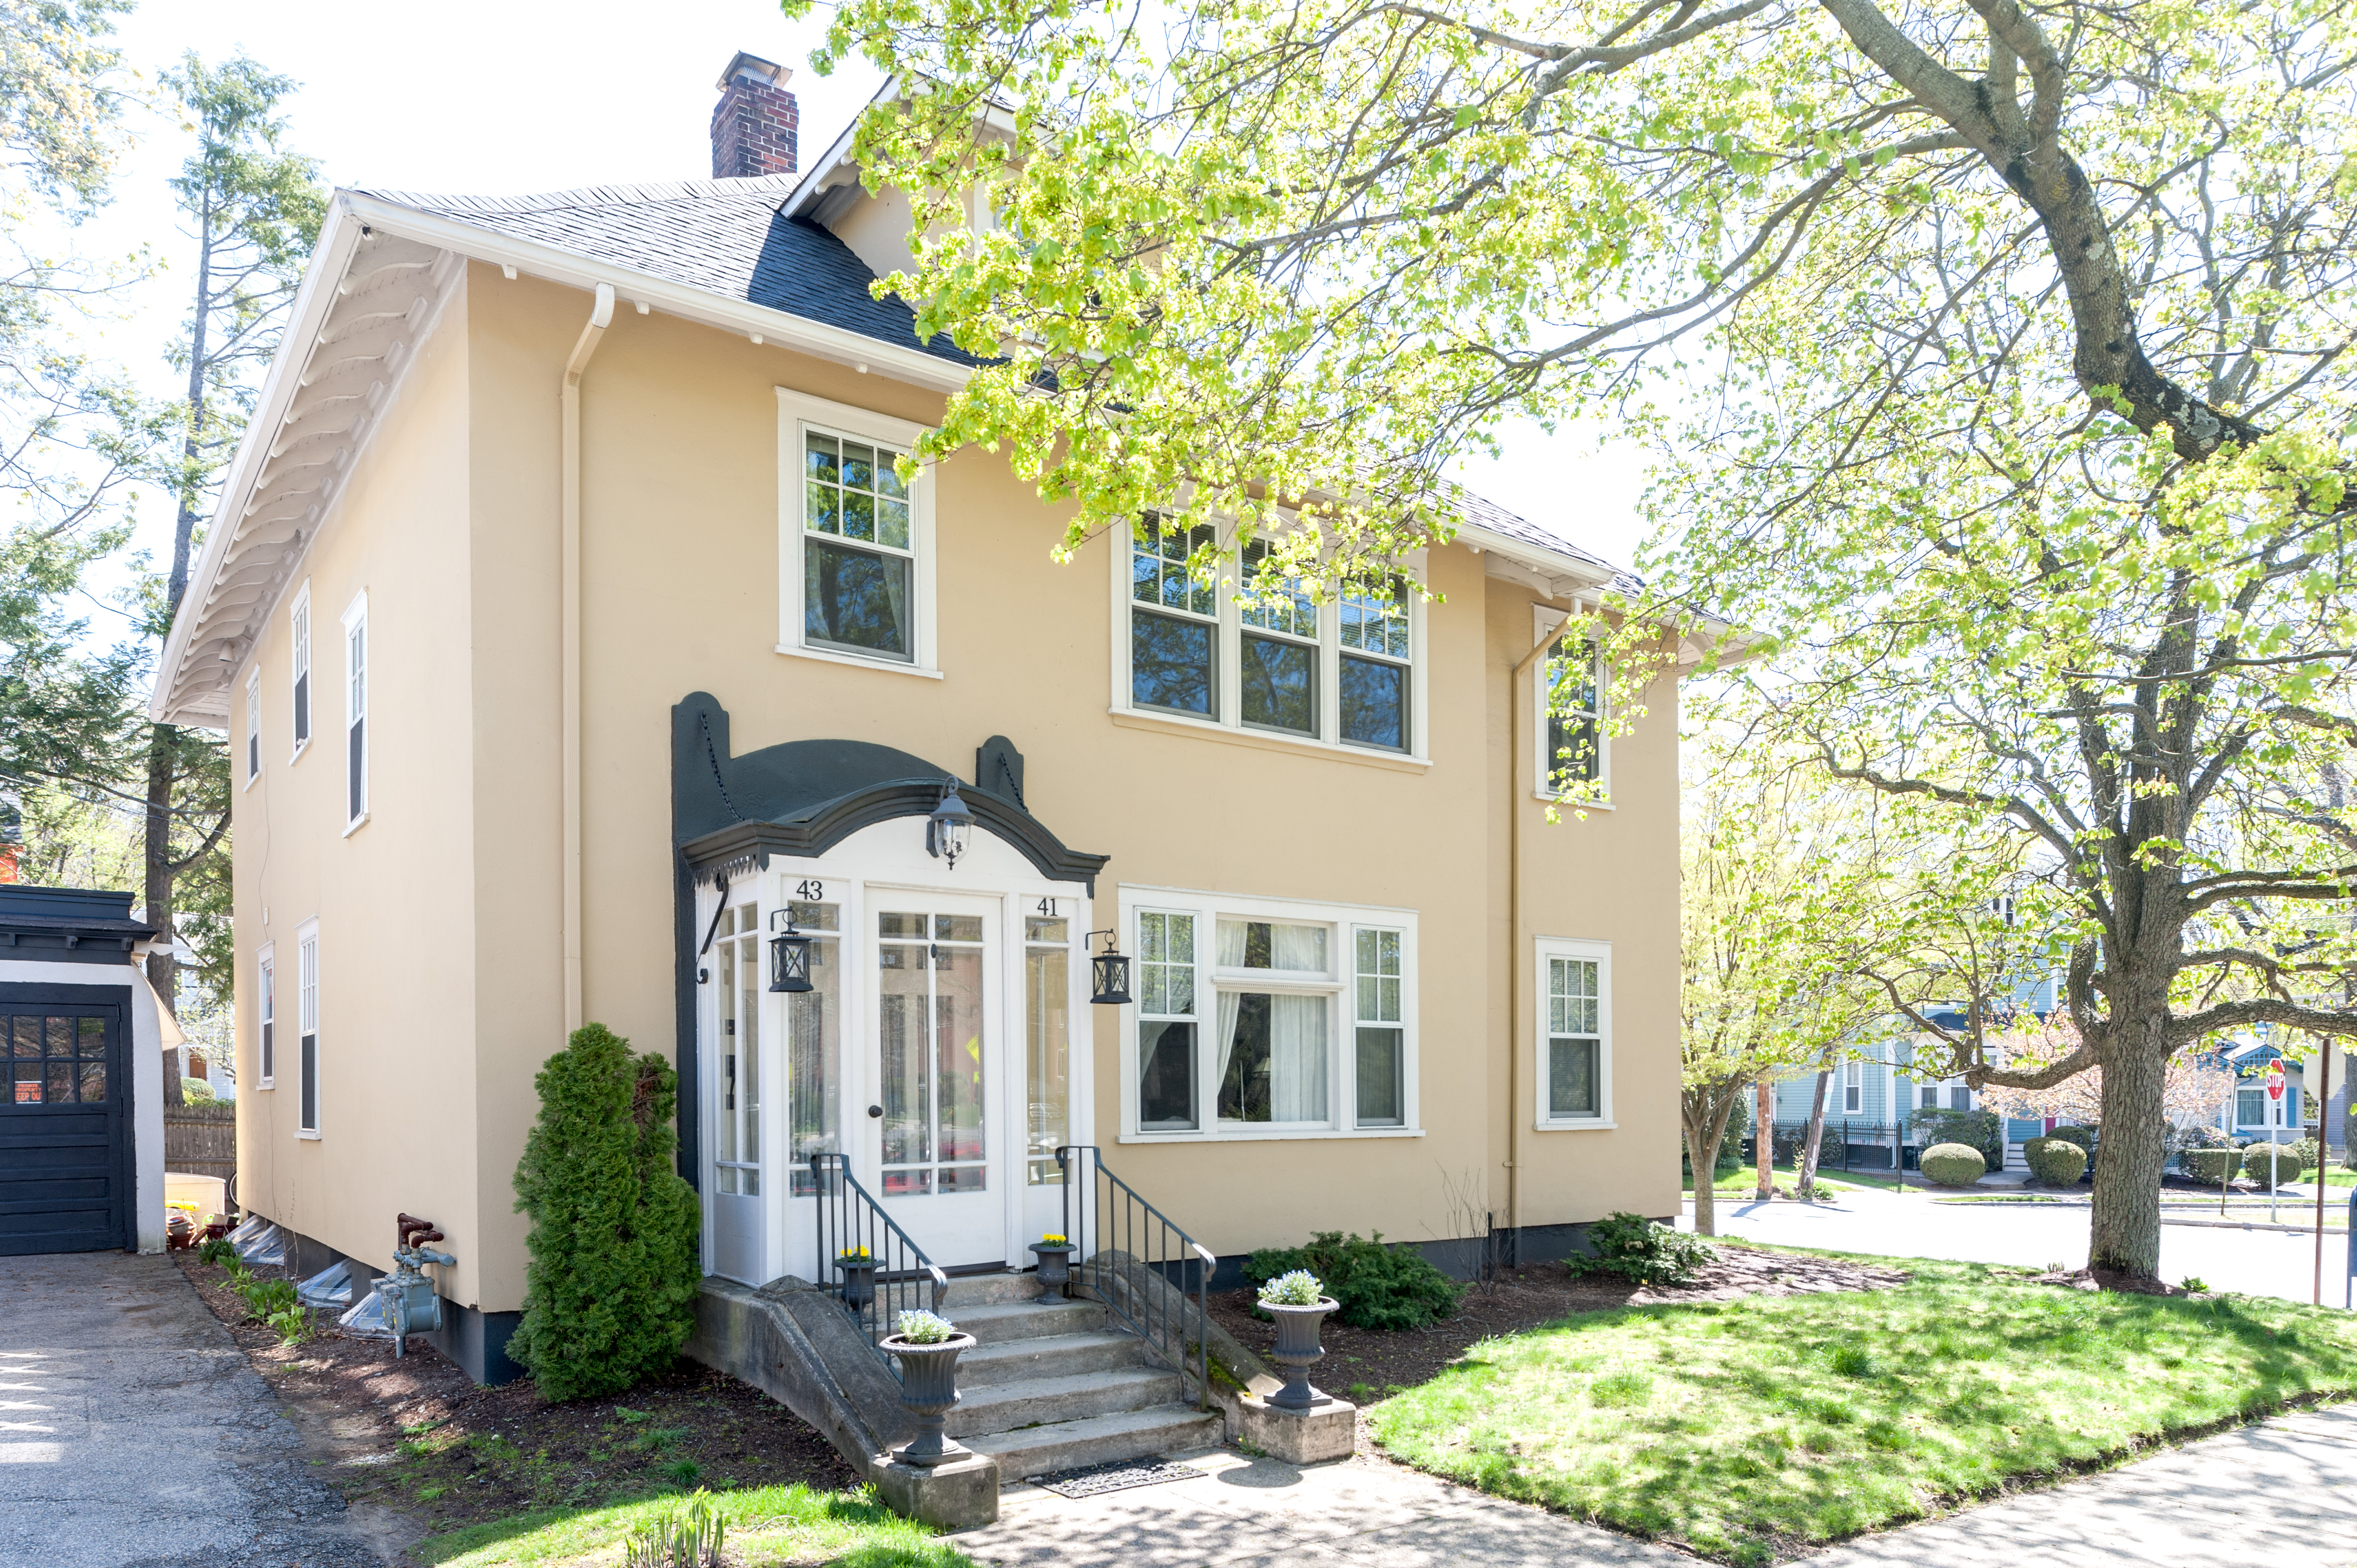 Multi-Family Home for Sale at 41 - 43 Blackstone Blvd, East Side Of Prov, RI Providence, Rhode Island, 02906 United States